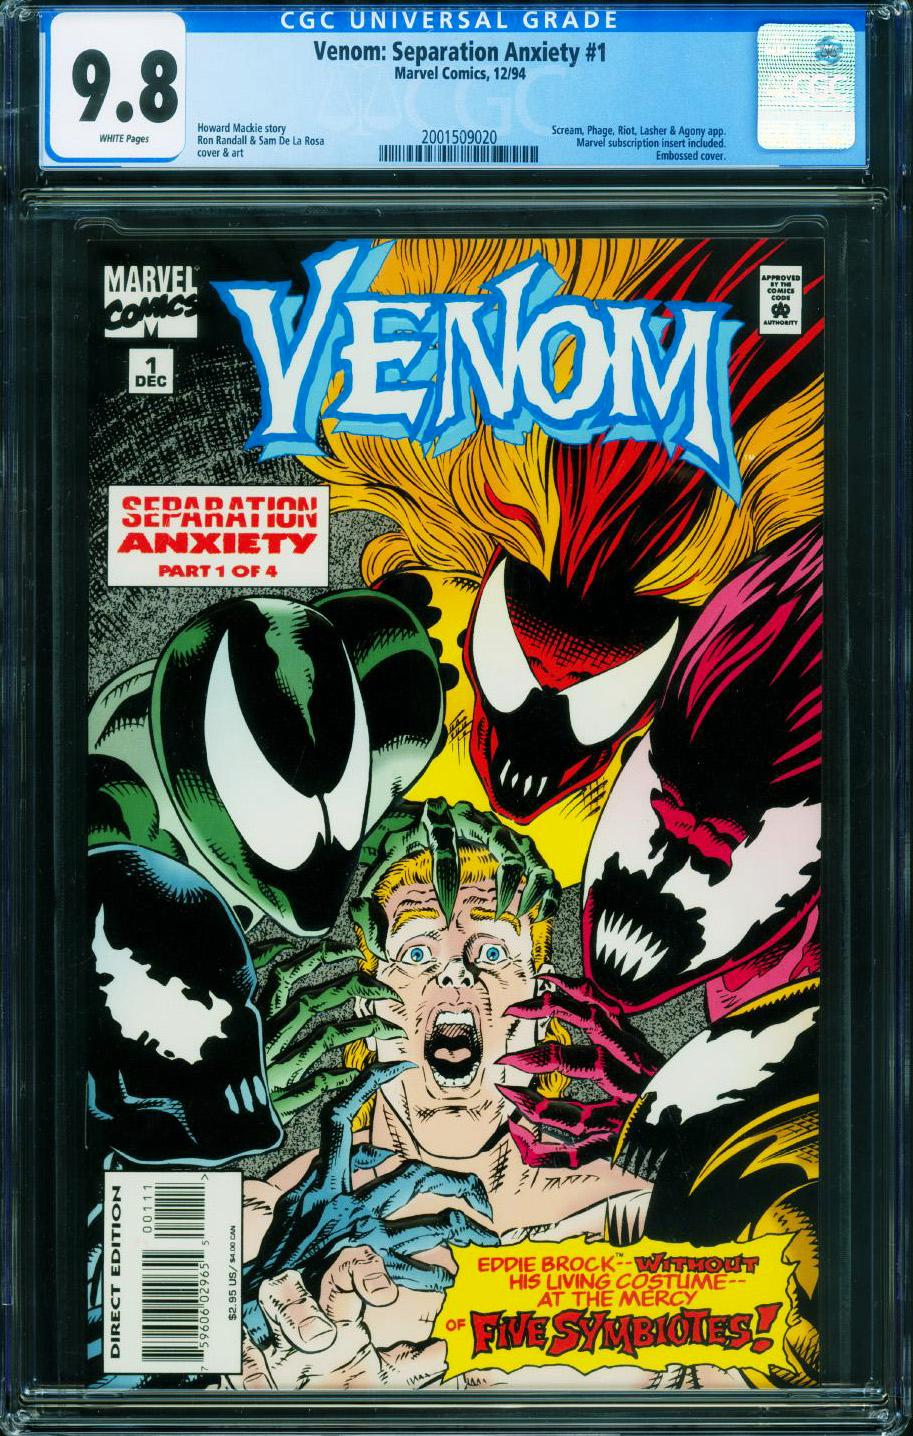 Venom Separation Anxiety 1 1st Issue Cgc 9 8 1994 2001509020 1994 Comic Dta Collectibles